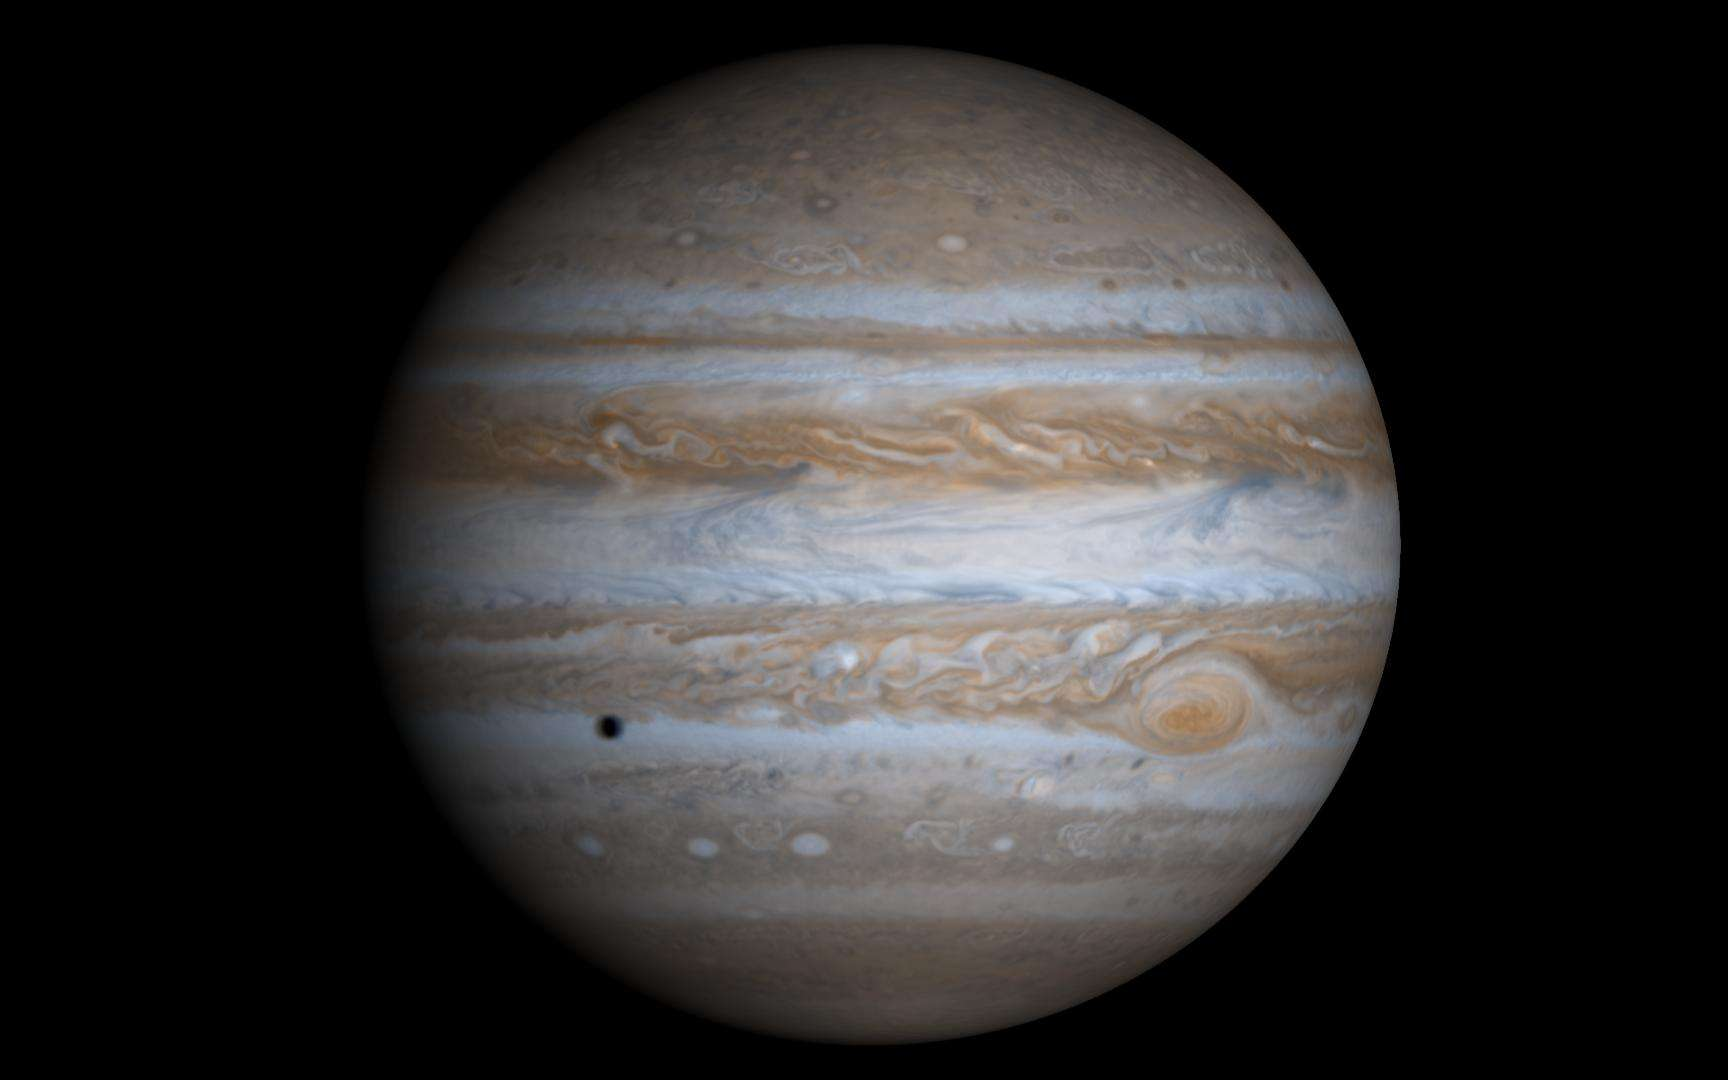 Une vue de Jupiter. © Nasa/JPL/University of Arizona